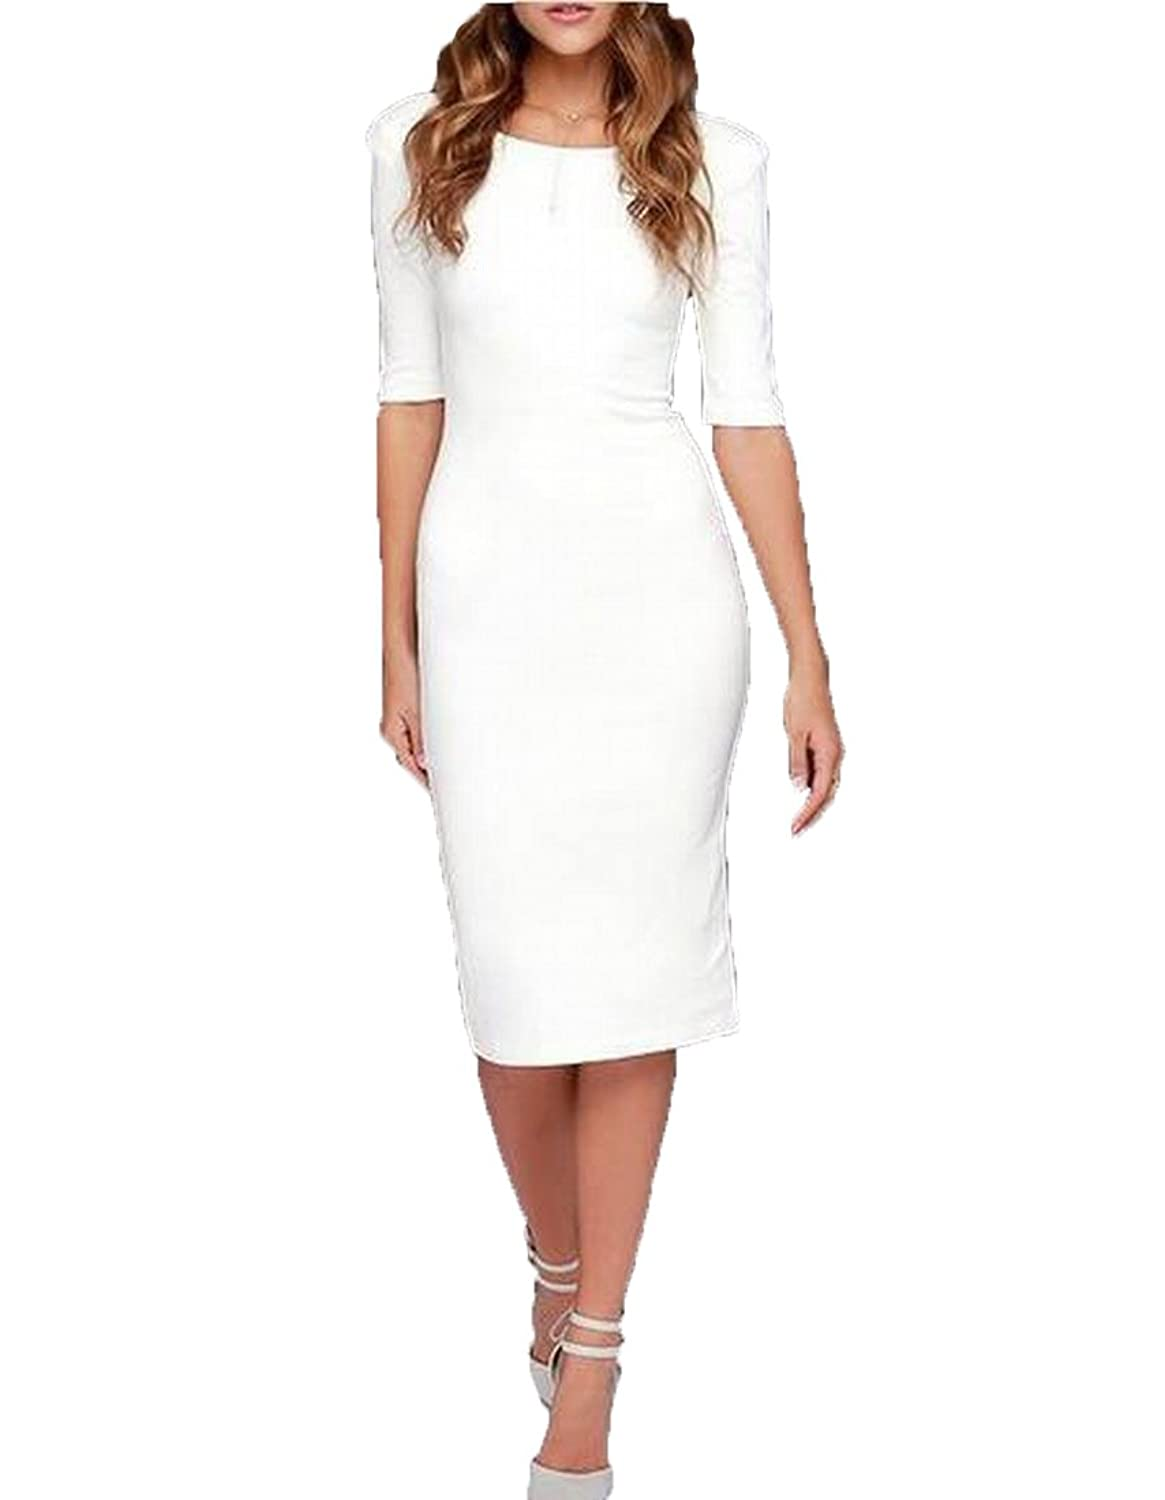 Abetteric Womens Chic Zip@Up Knee Length Backless Bodycon Dress